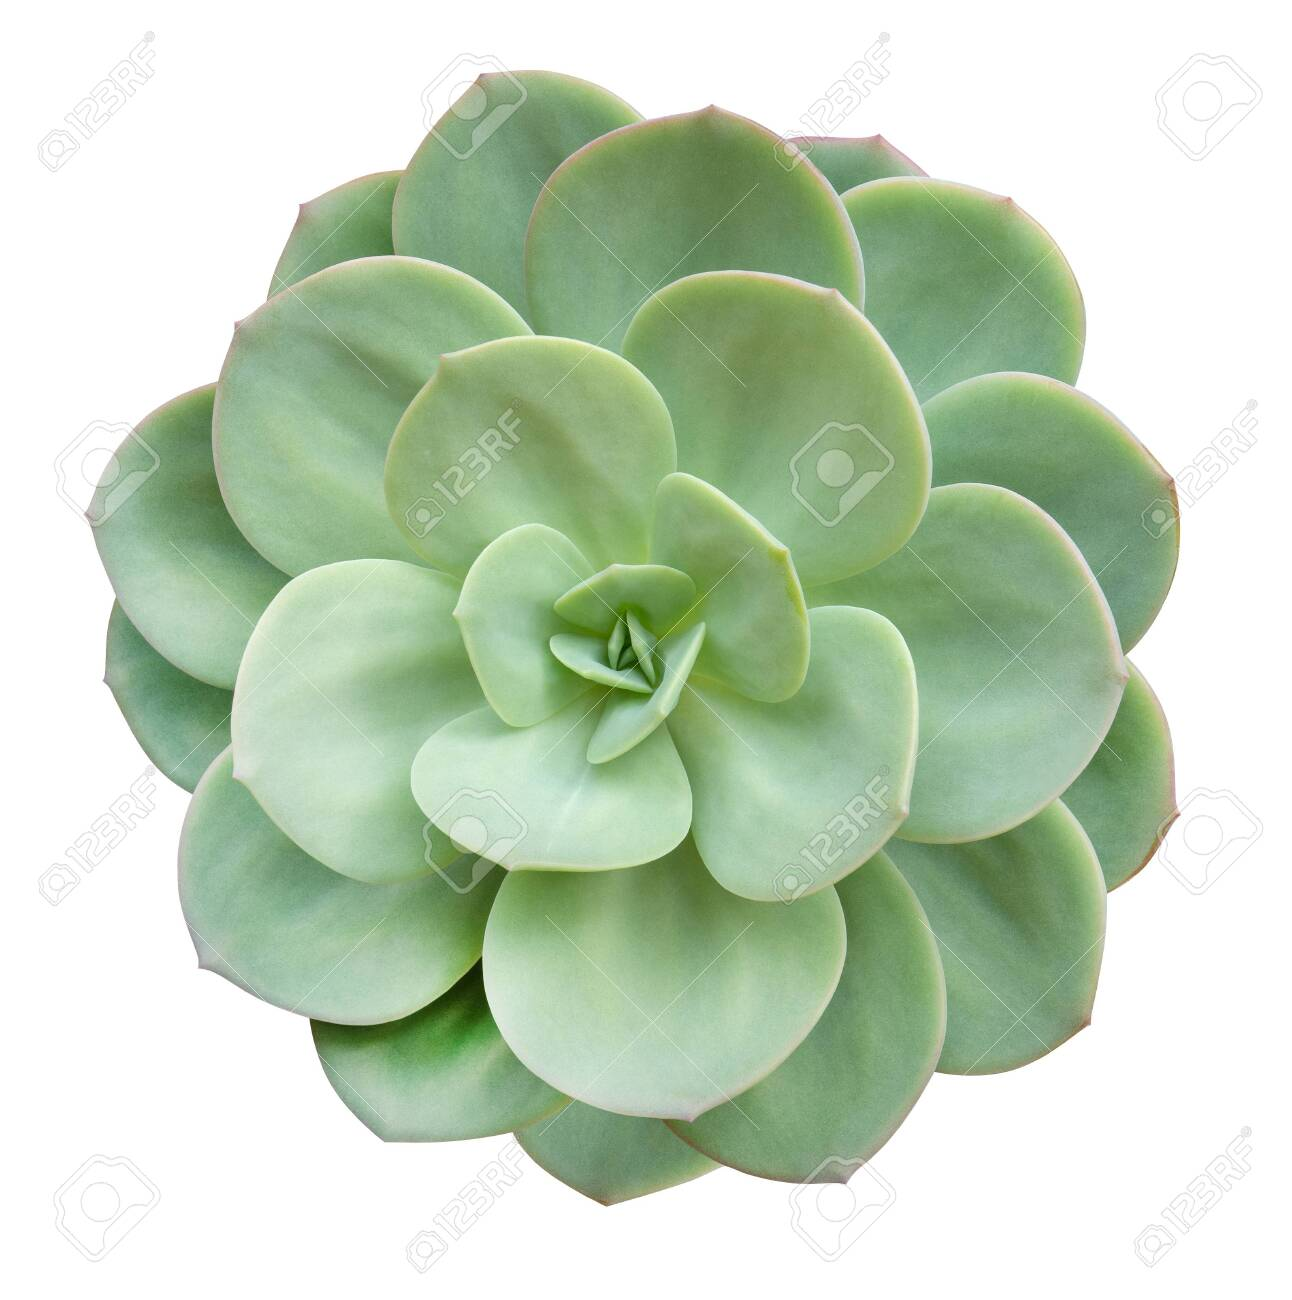 Green Succulent Cactus Flower Tropical Plant Top View Isolated Stock Photo Picture And Royalty Free Image Image 141773088